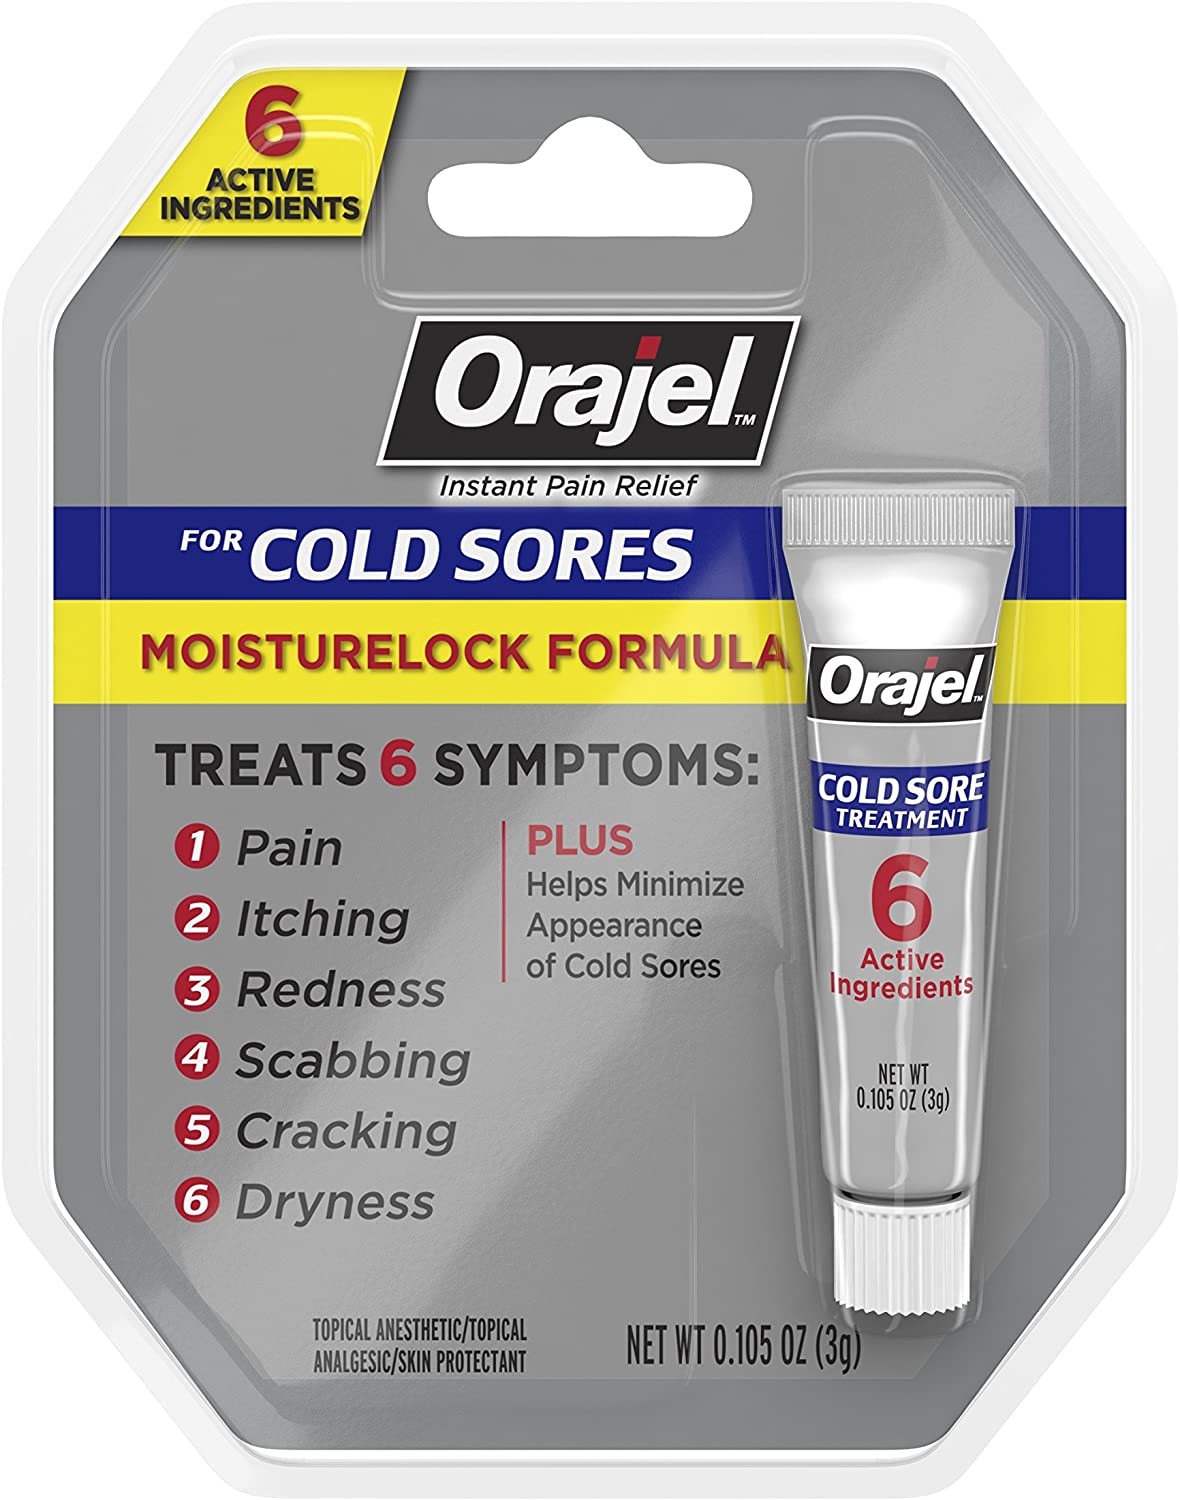 Cold Sore Treatment Orajel most embarrassing products